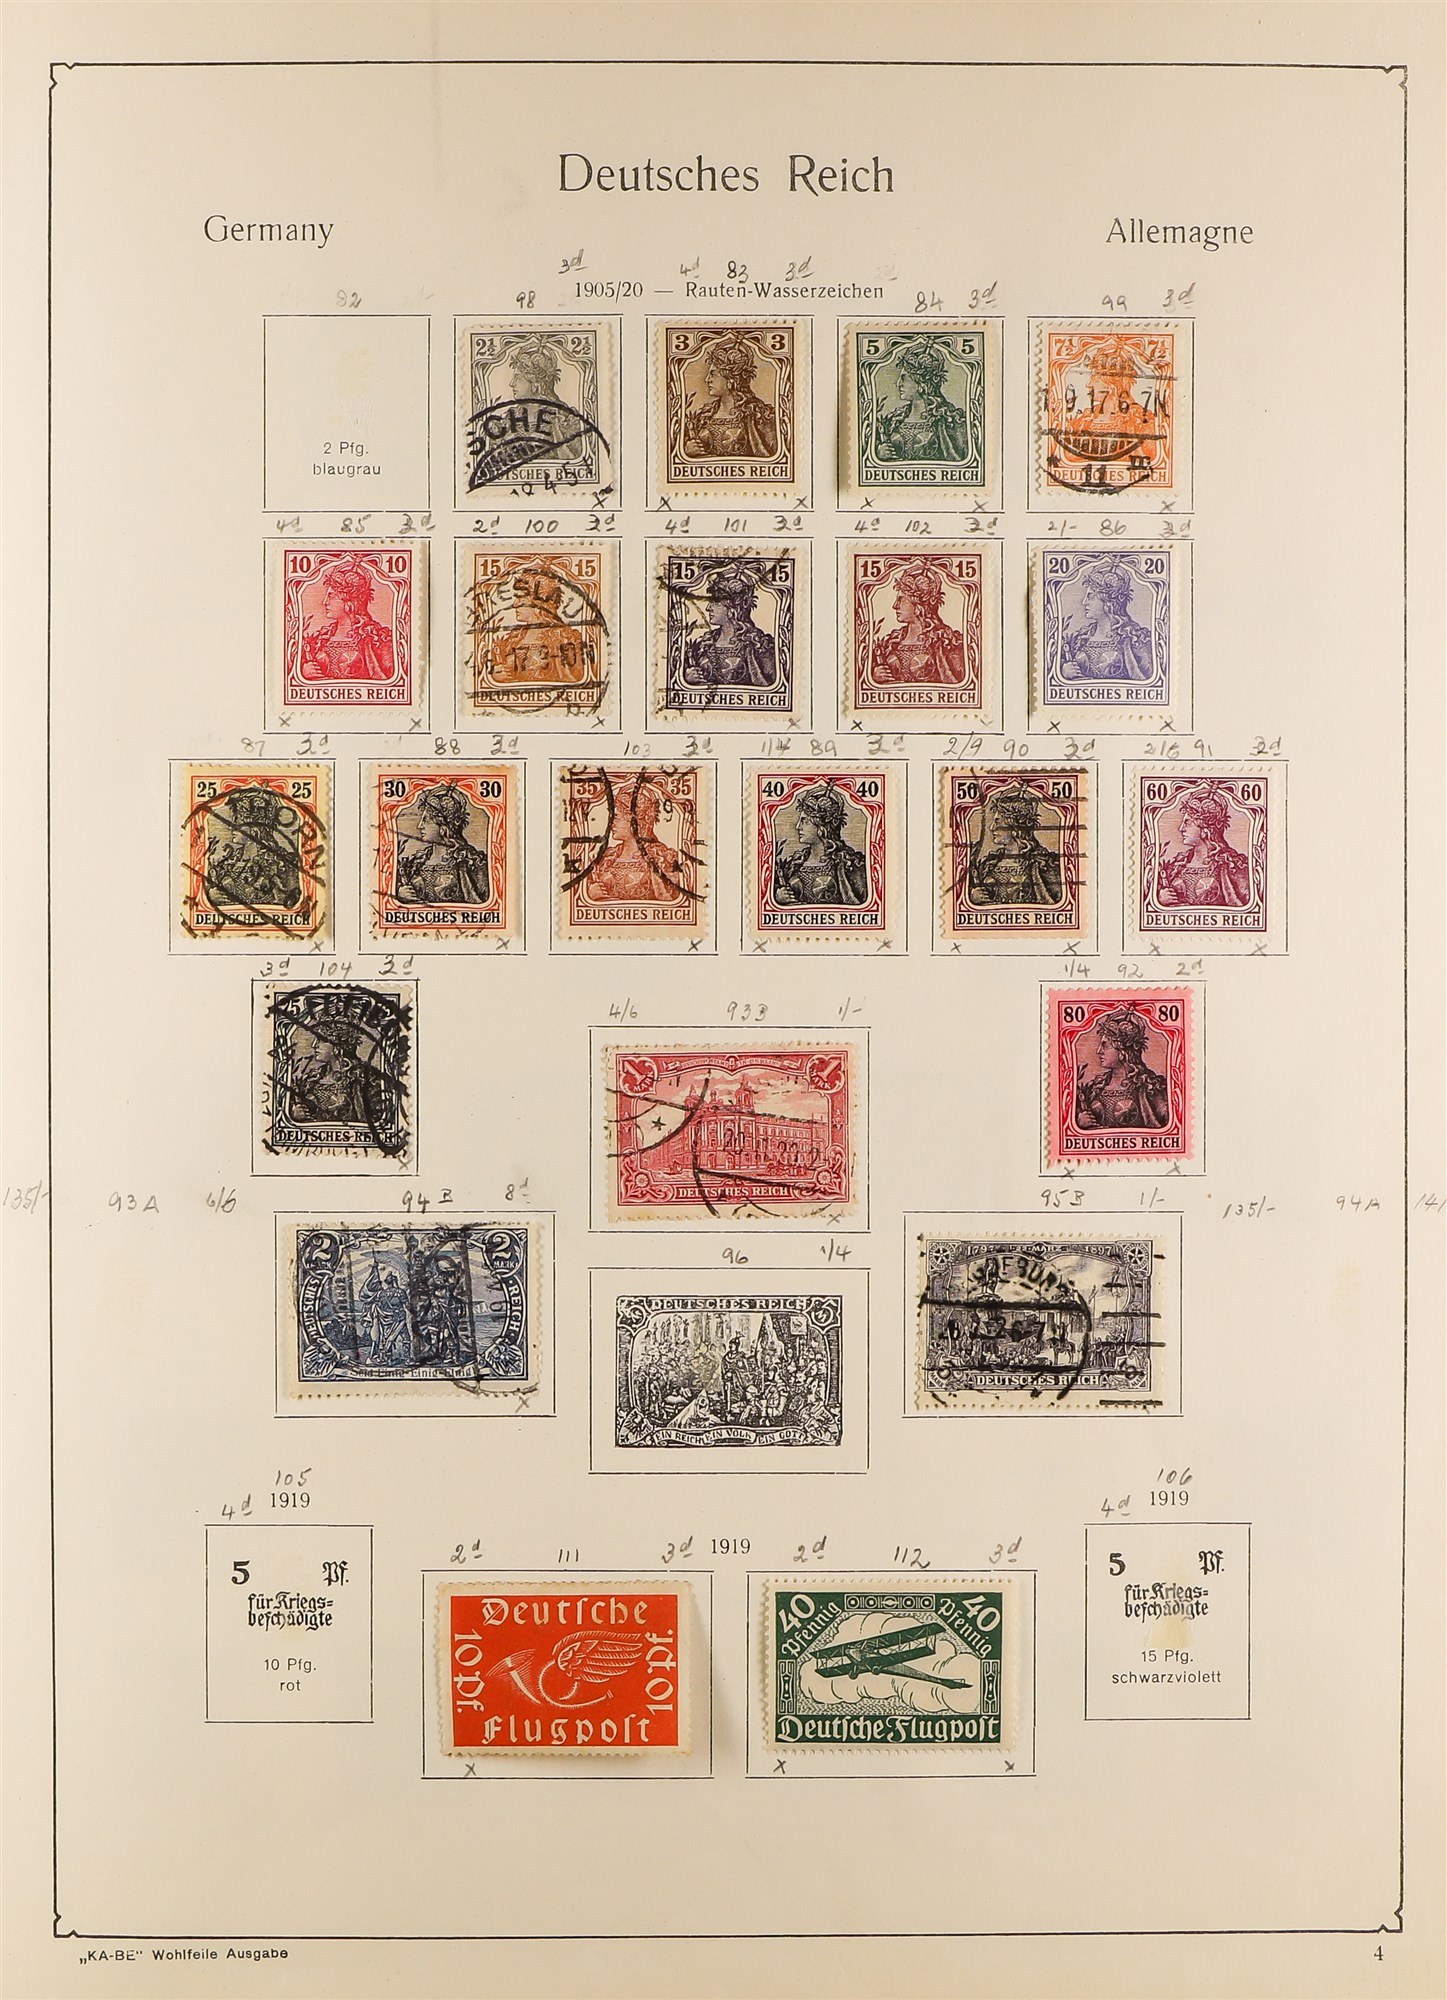 COLLECTIONS & ACCUMULATIONS FRANCE, GERMANY, SWITZERLAND IN TWO LARGE KA-BE ALBUMS with useful - Image 9 of 12